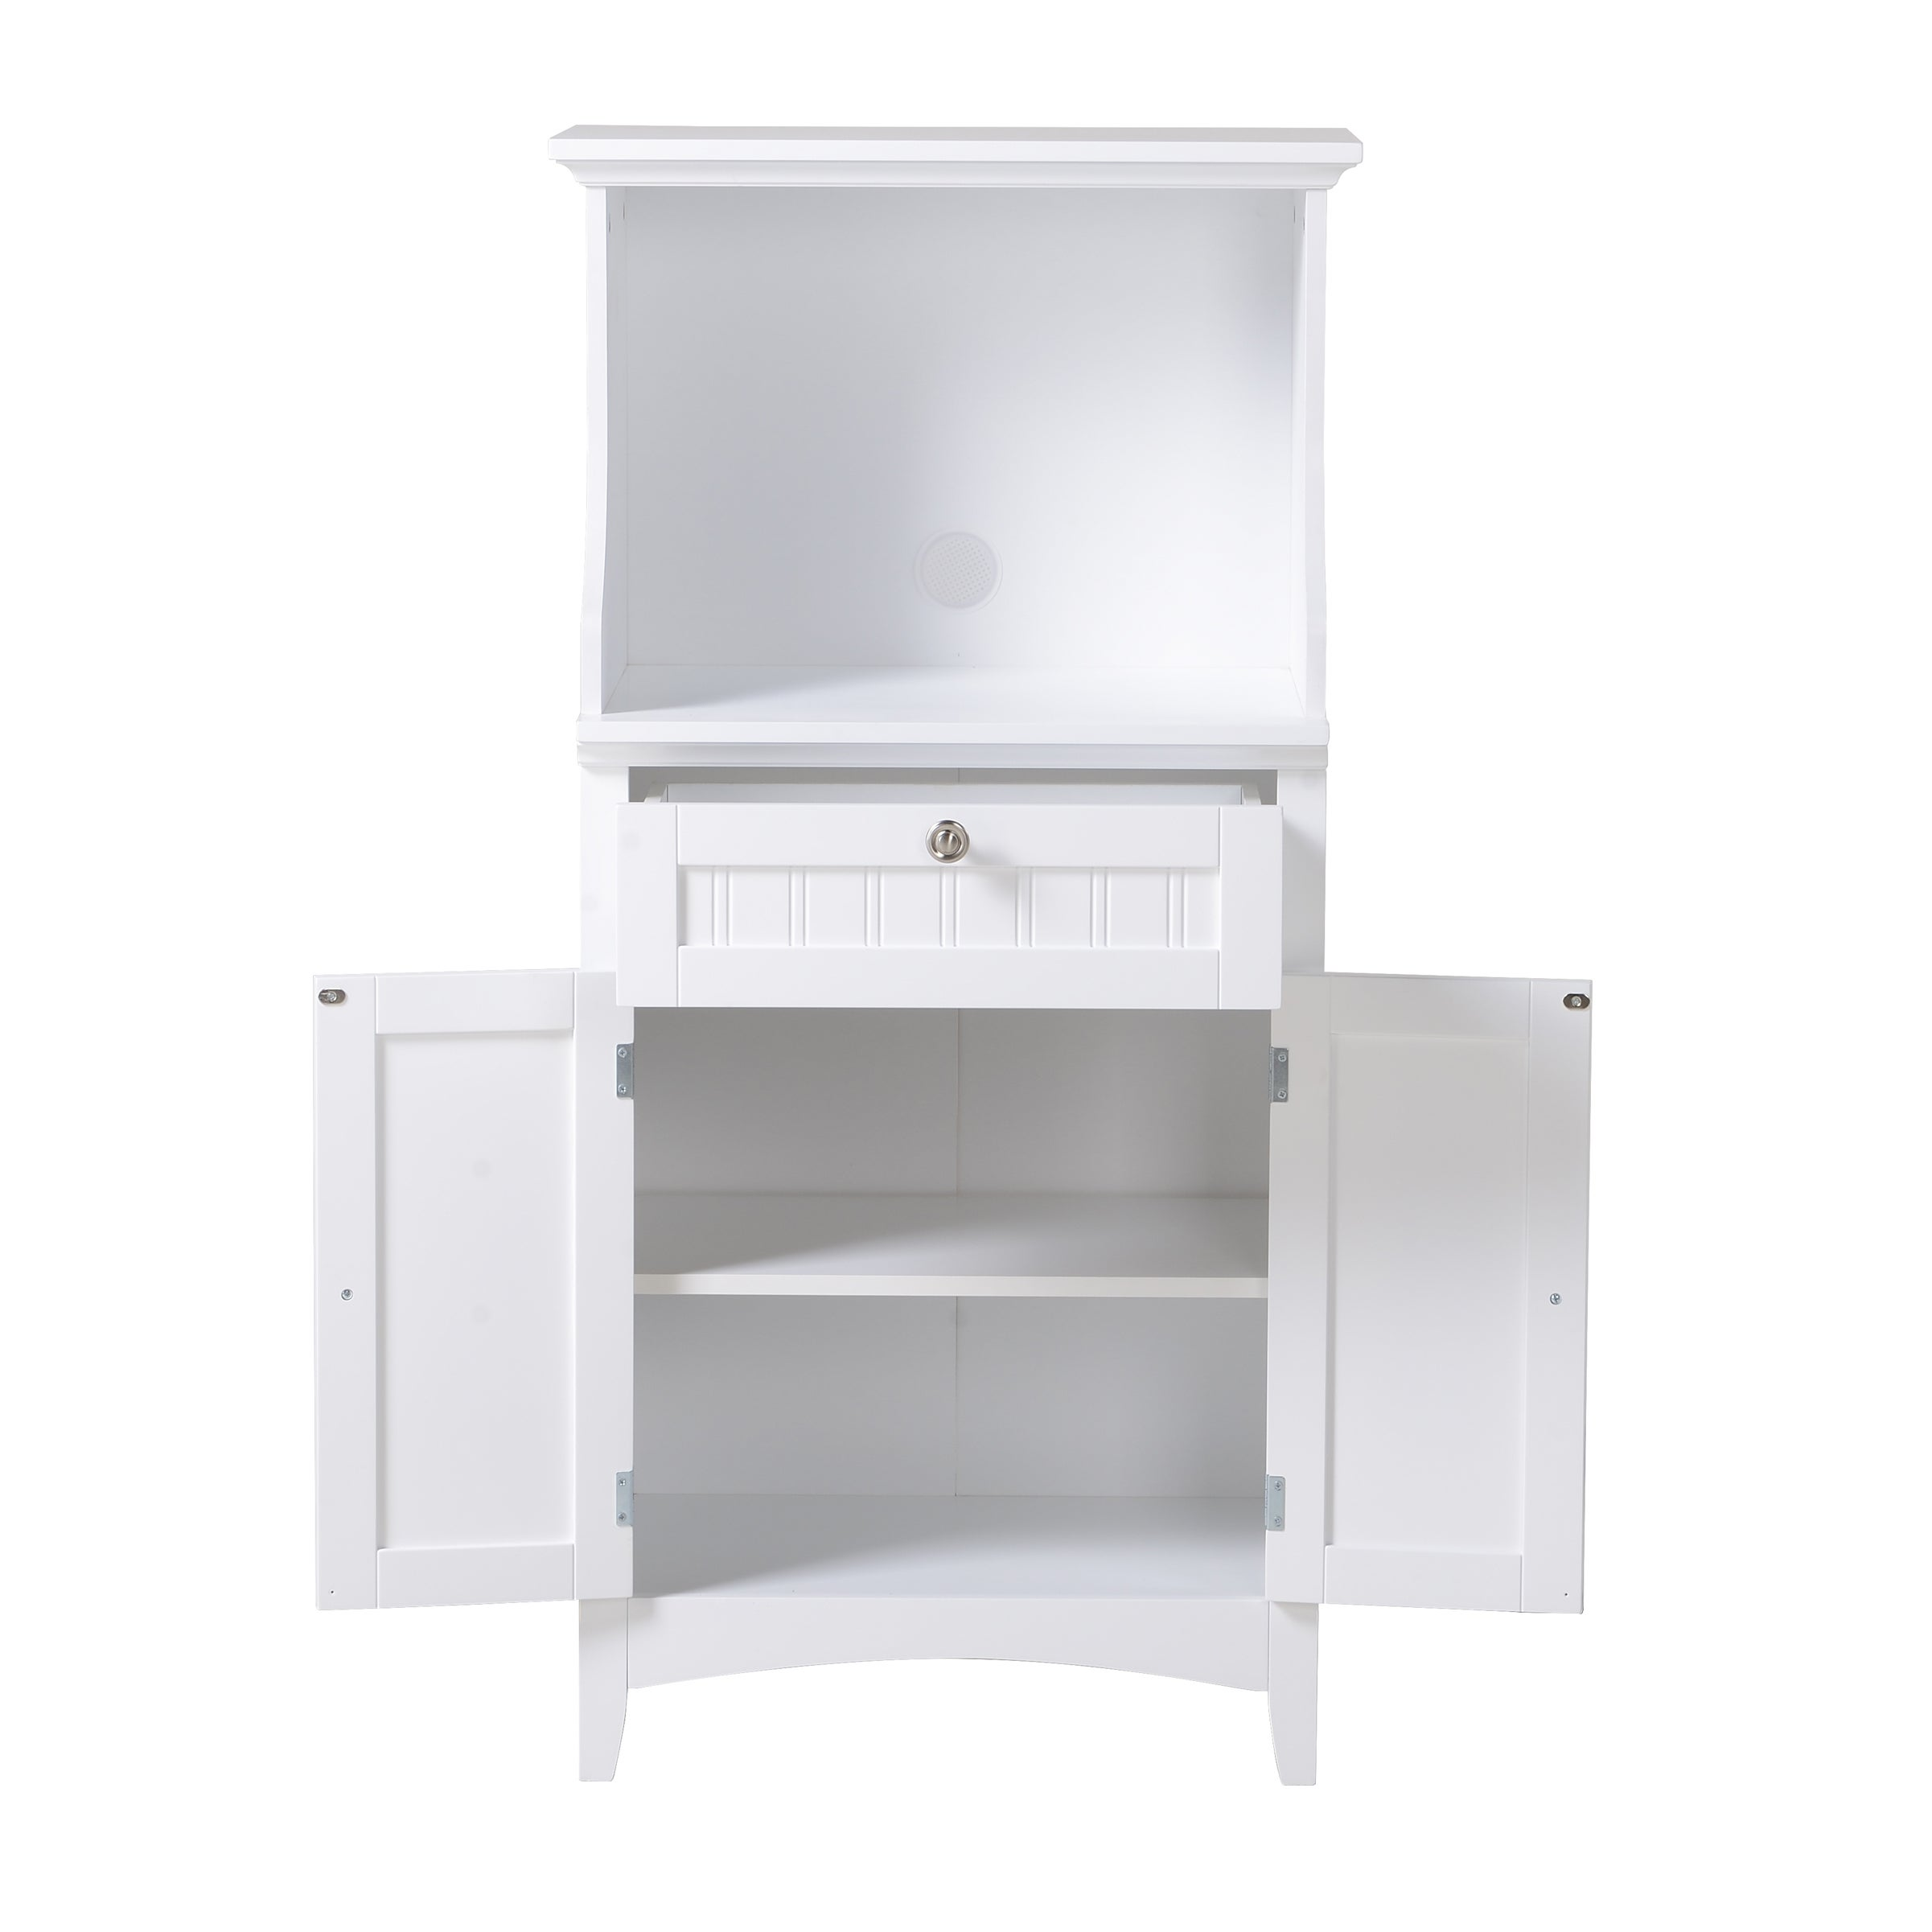 brook cabinet source cherry com drawer finish home and with tall upper dp kitchen lower wood an white microwave amazon industries